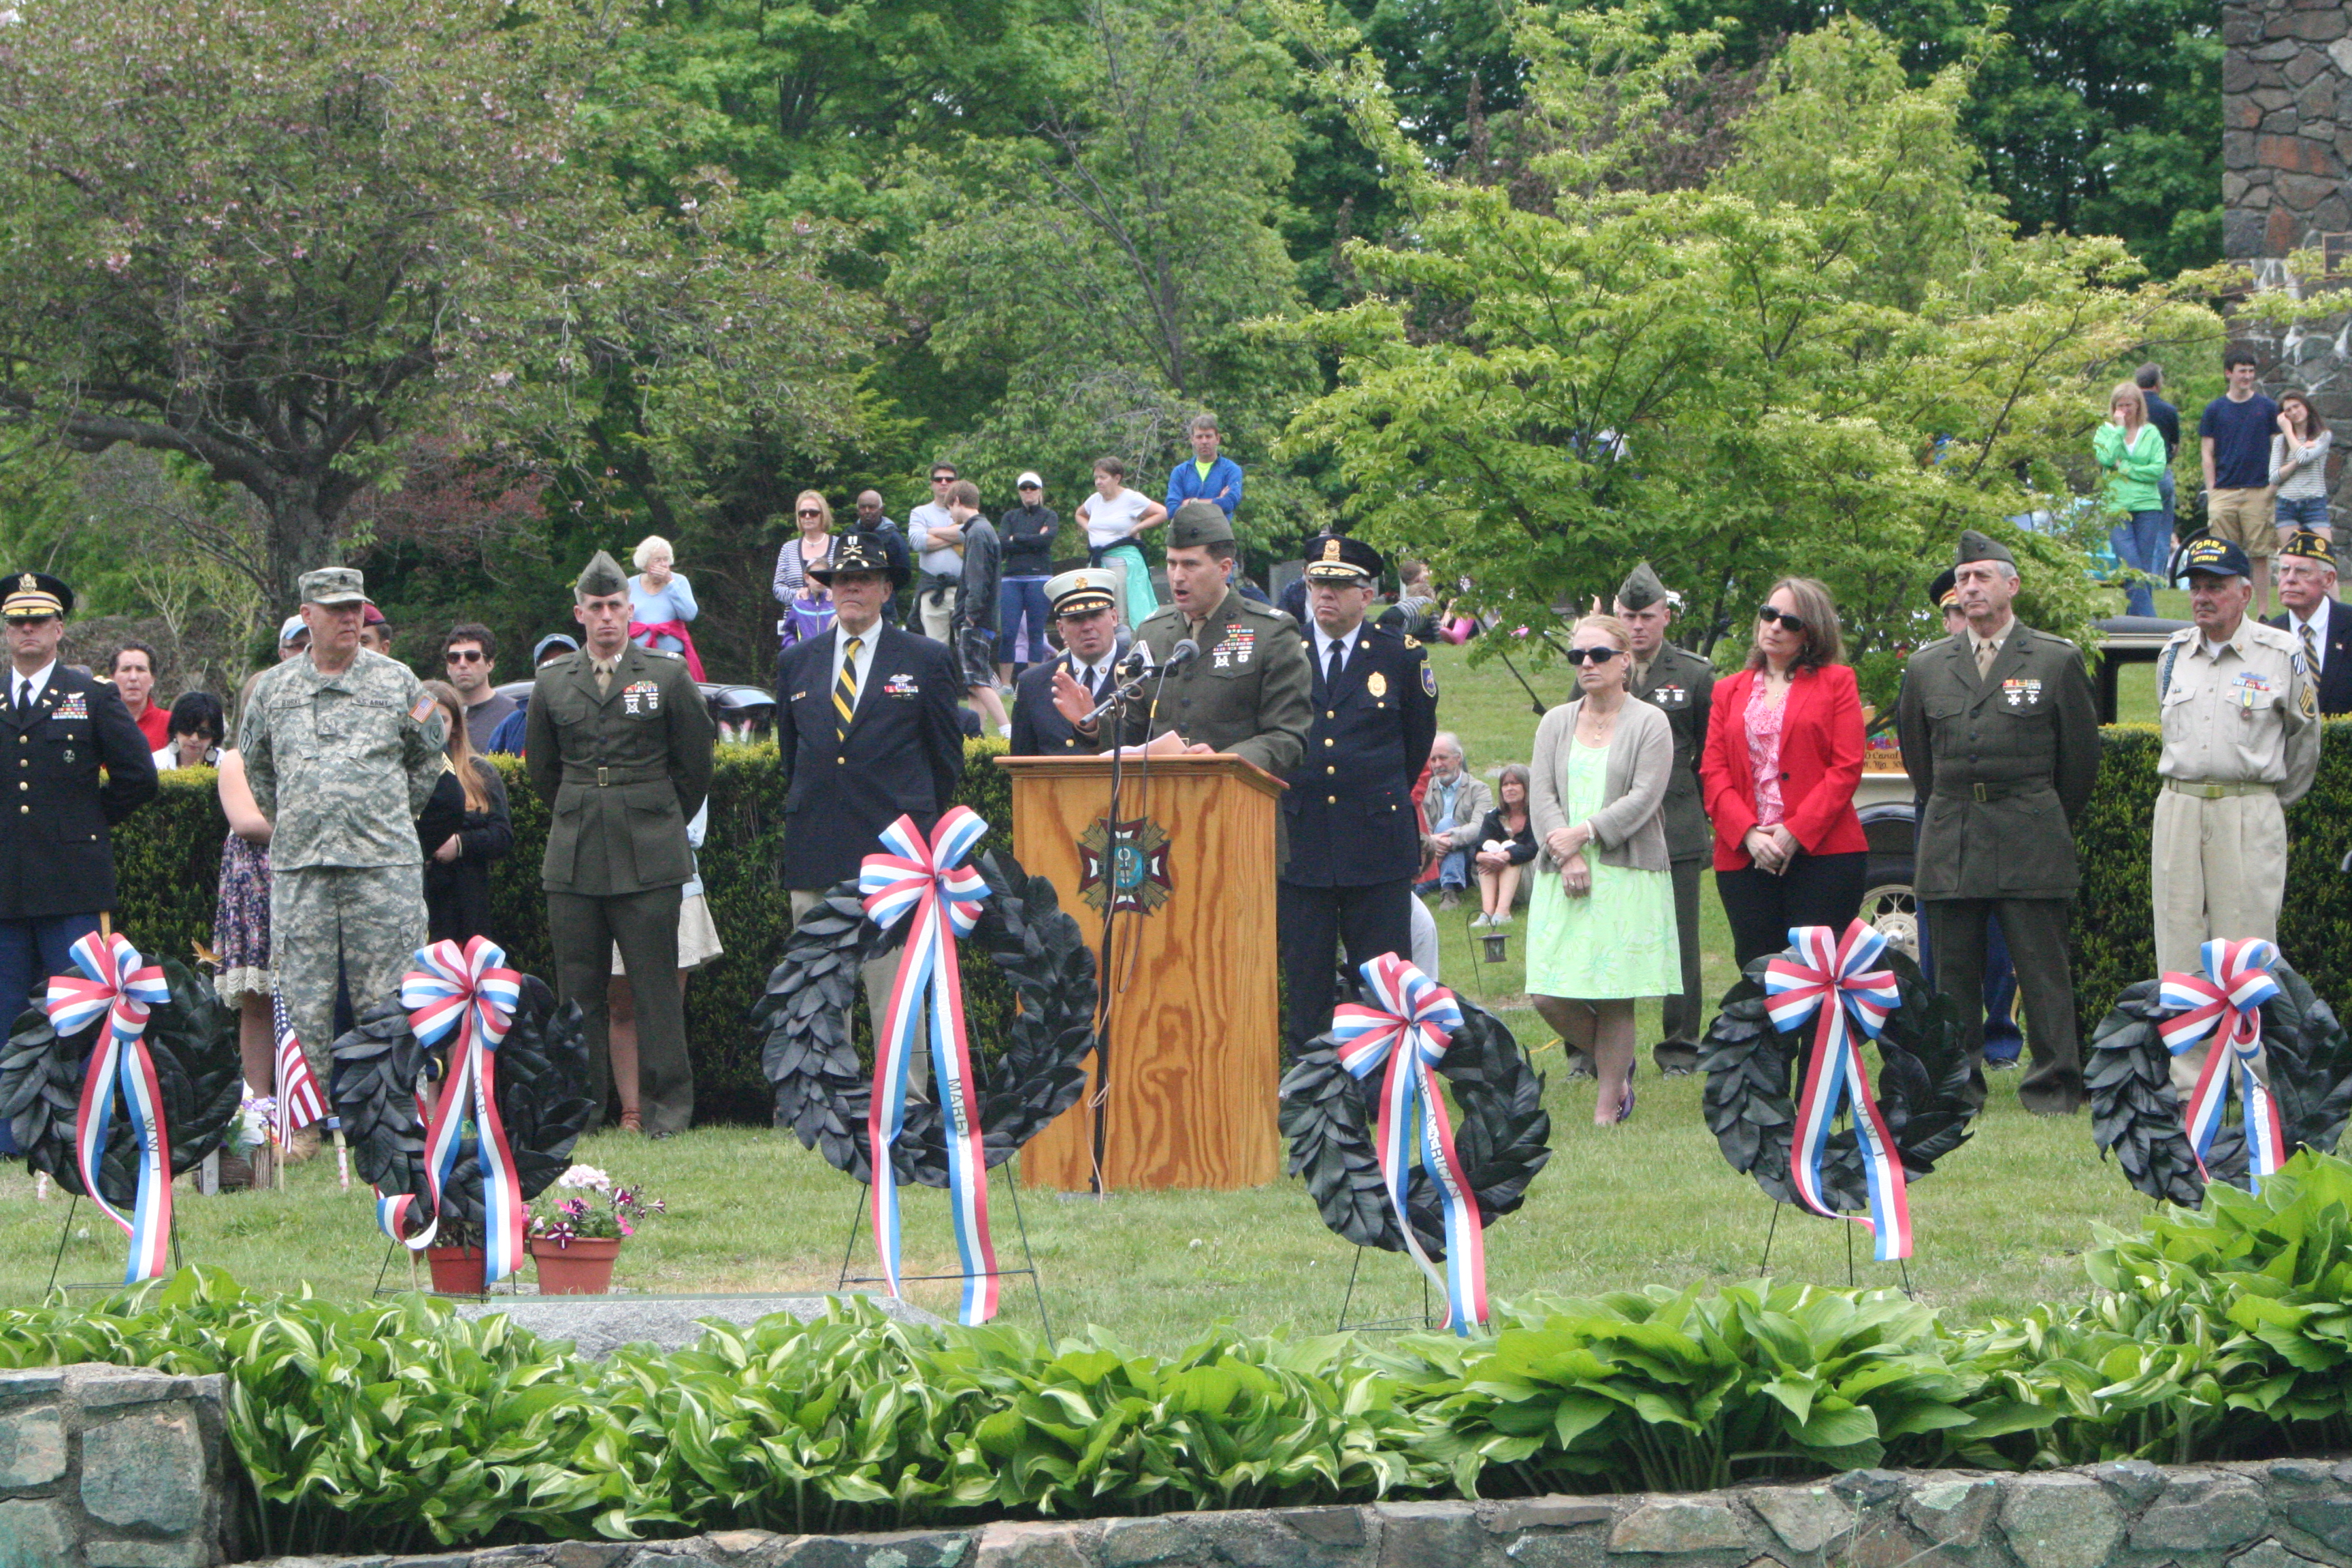 140526_Marblehead_Memorial_Day_Parade_10.JPG